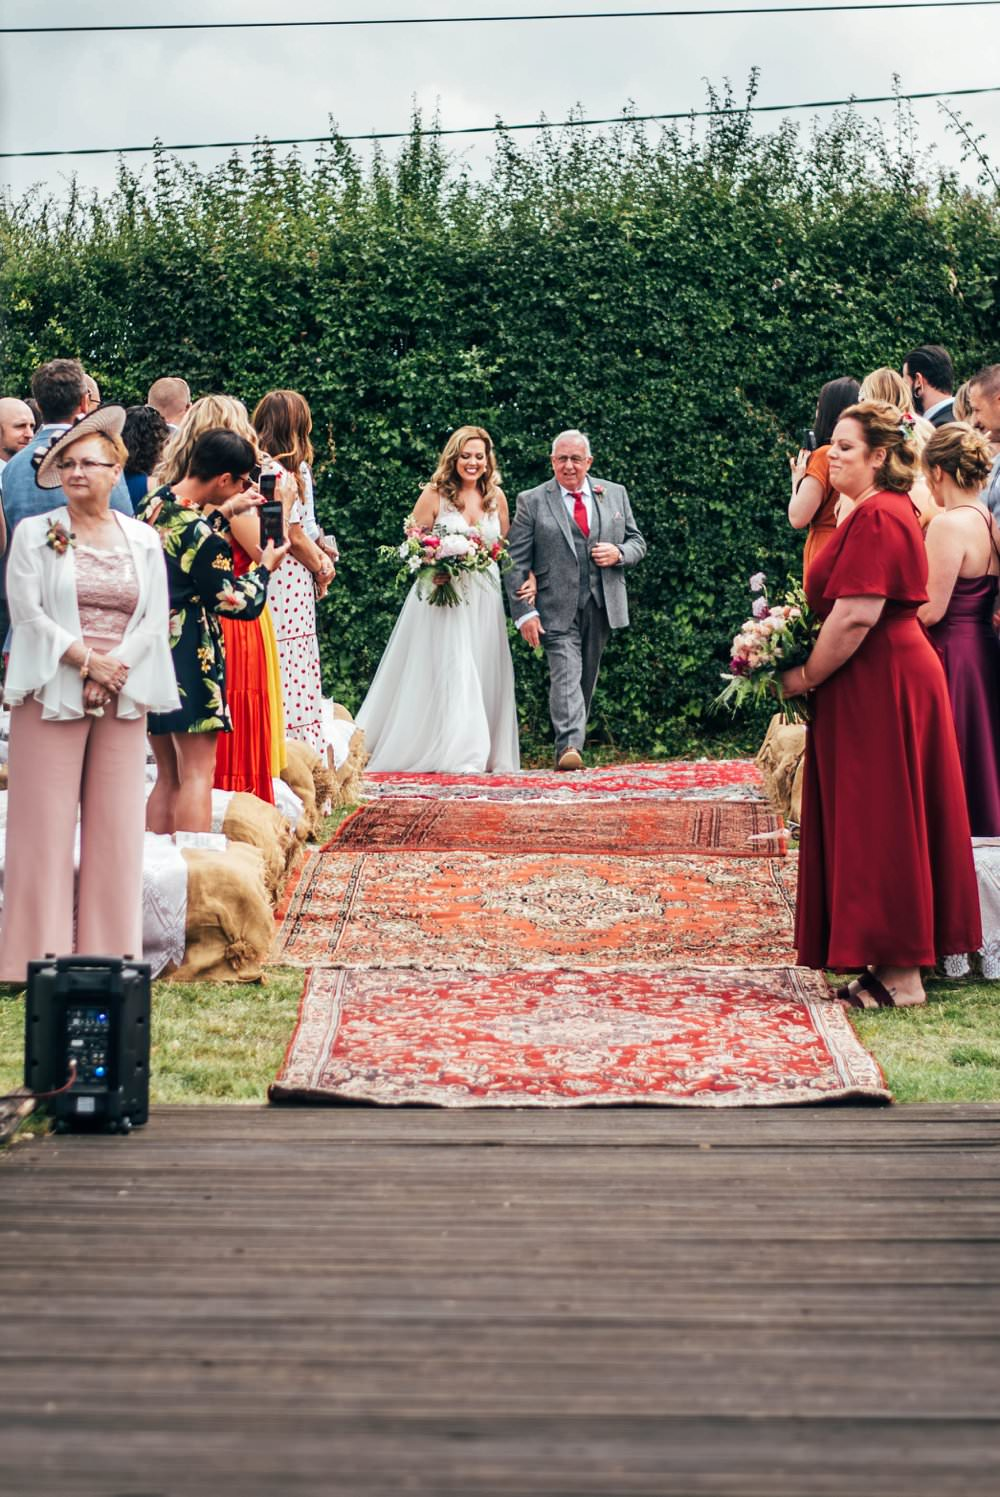 Outdoor Ceremony Persian Rugs Hay Bales Pink Red Wedding Three Flowers Photography